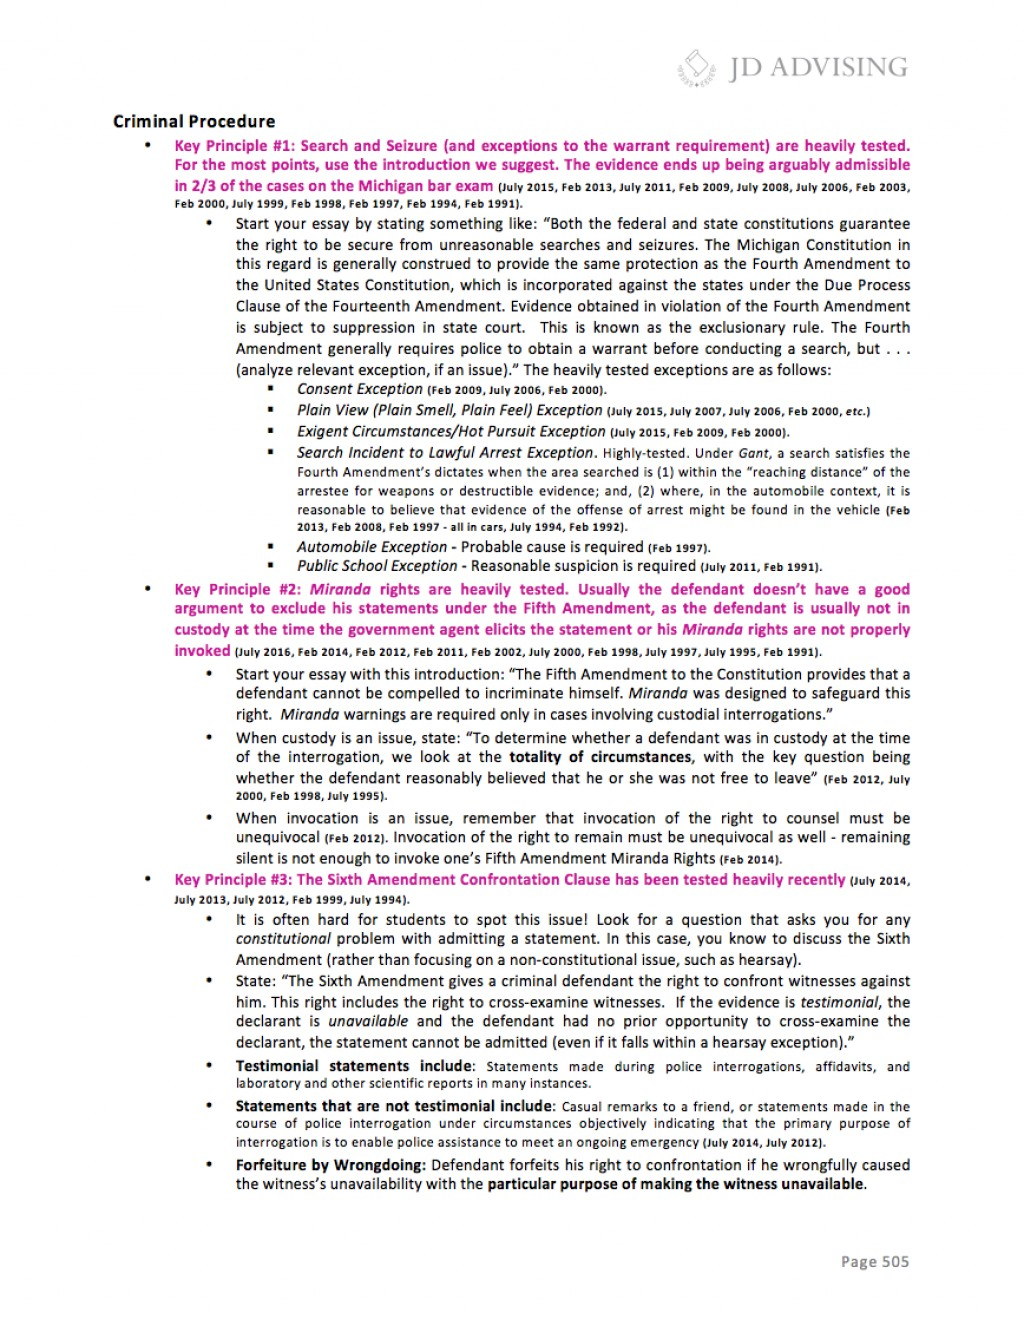 006 Essay Example Screen Shot At Pm Bar Incredible Essays Baressays Coupon Code Baressays.com Ny Predictions Large